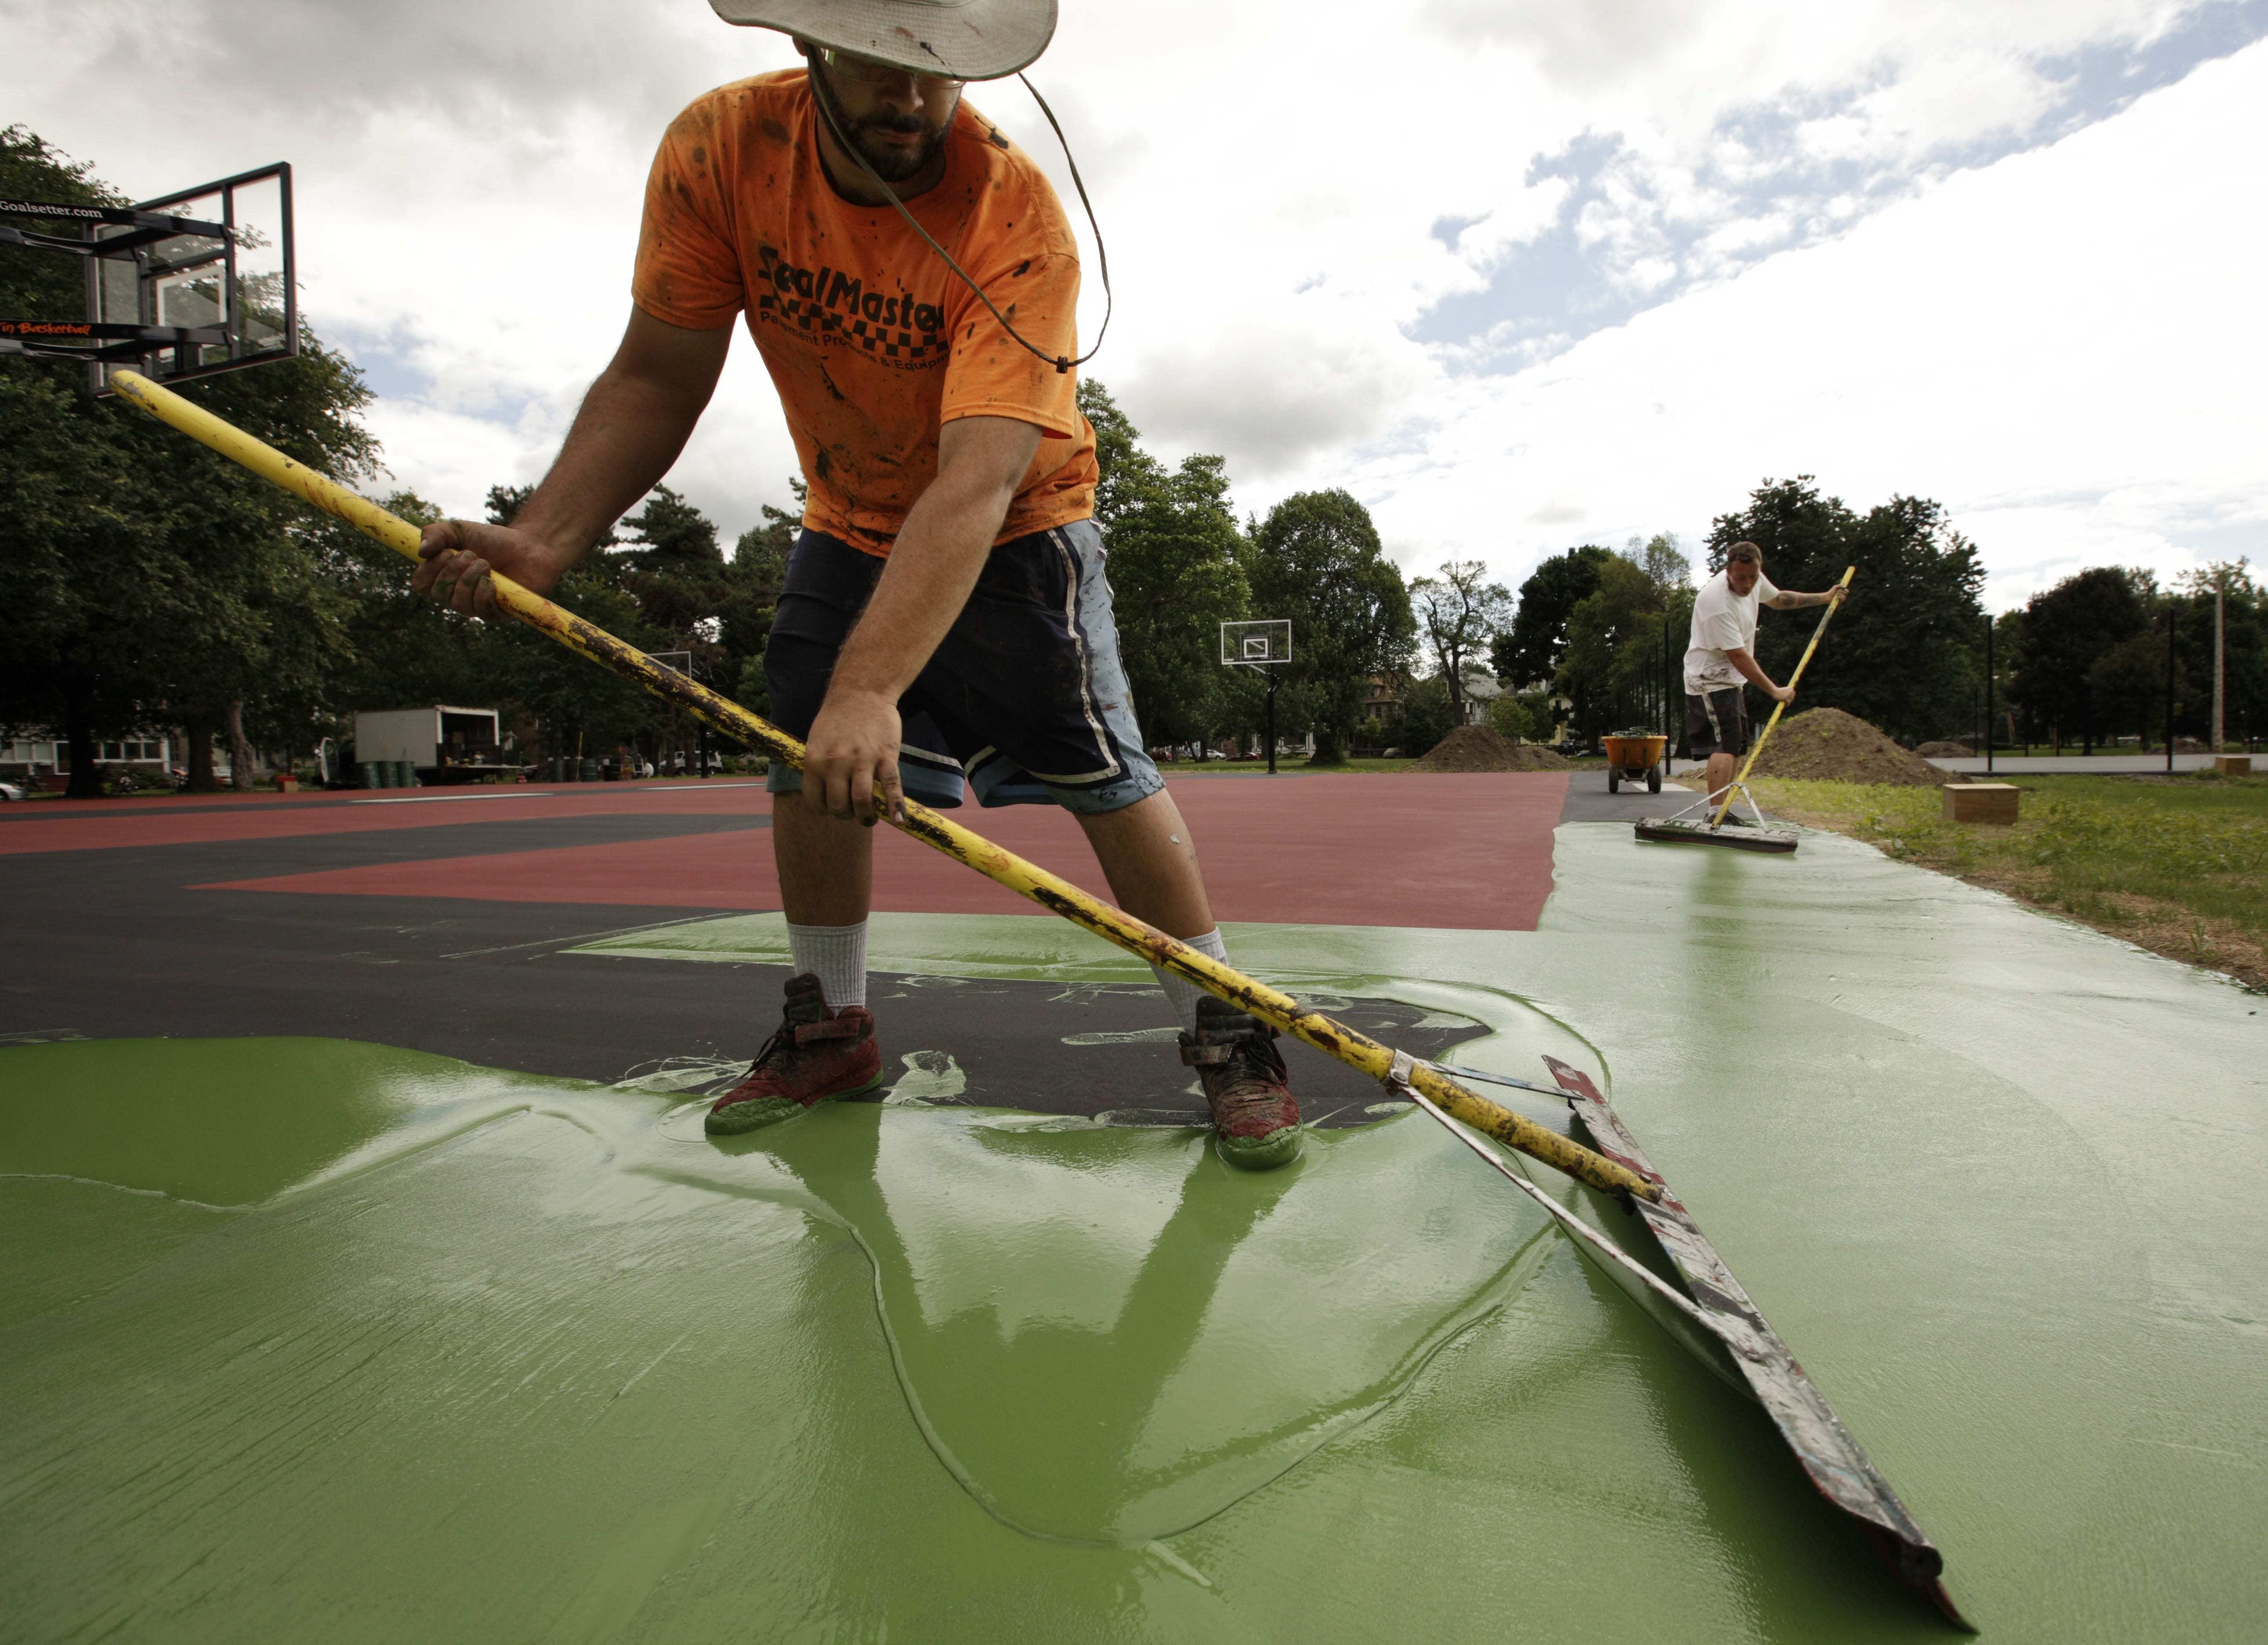 Michael L. Cabrera, left, and Edwin Collins of Sportscourt, spread a coat of specially formulated paint on the basketball court while surfacing the courts in Cazenovia Park today.